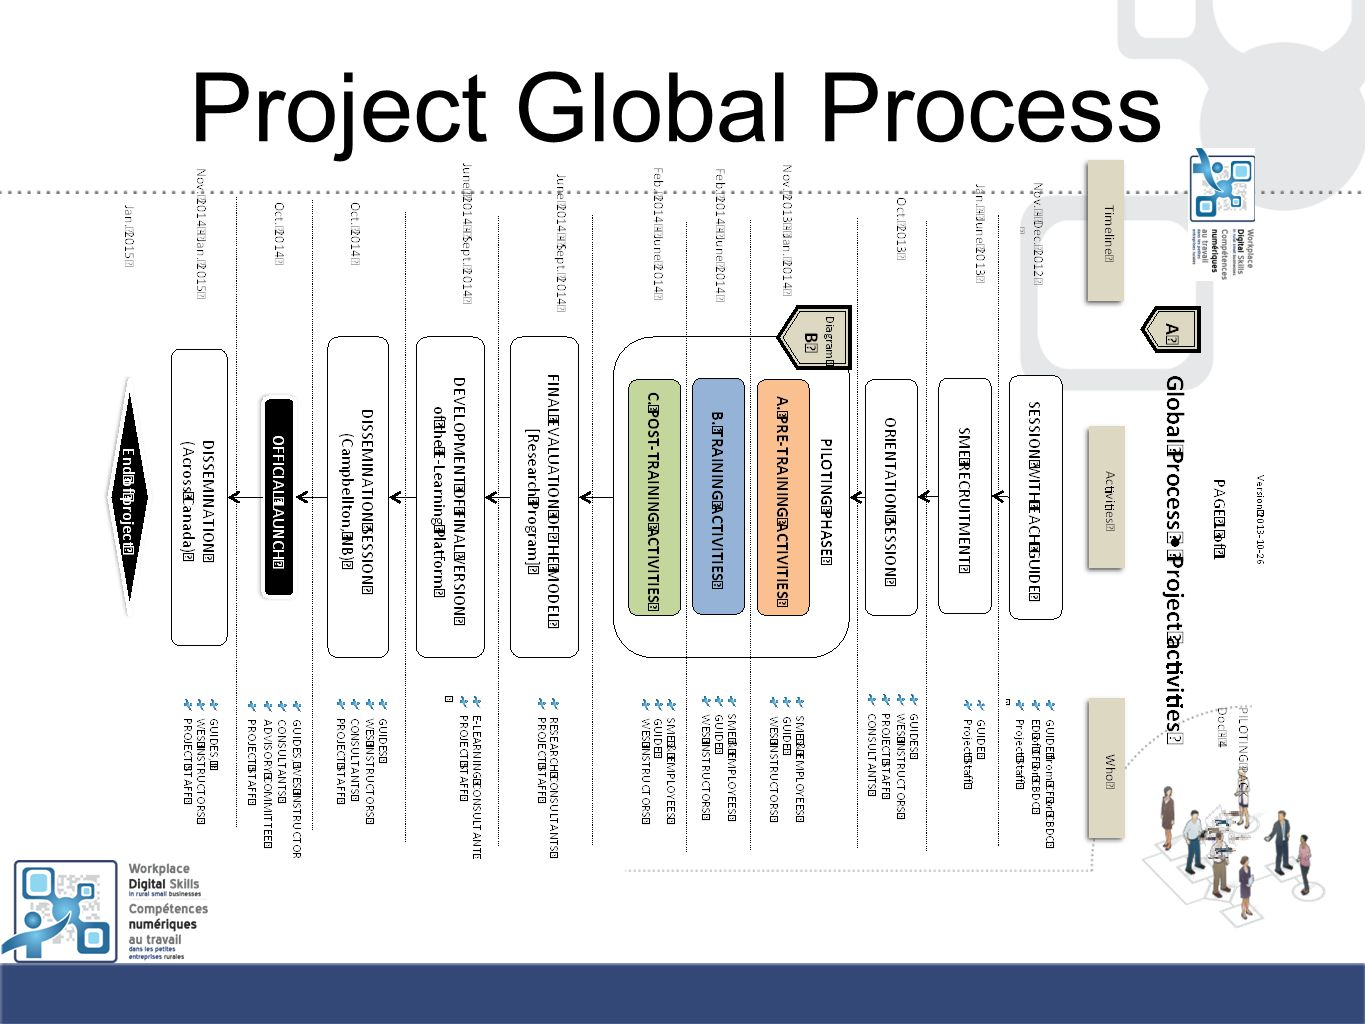 Project Global Process